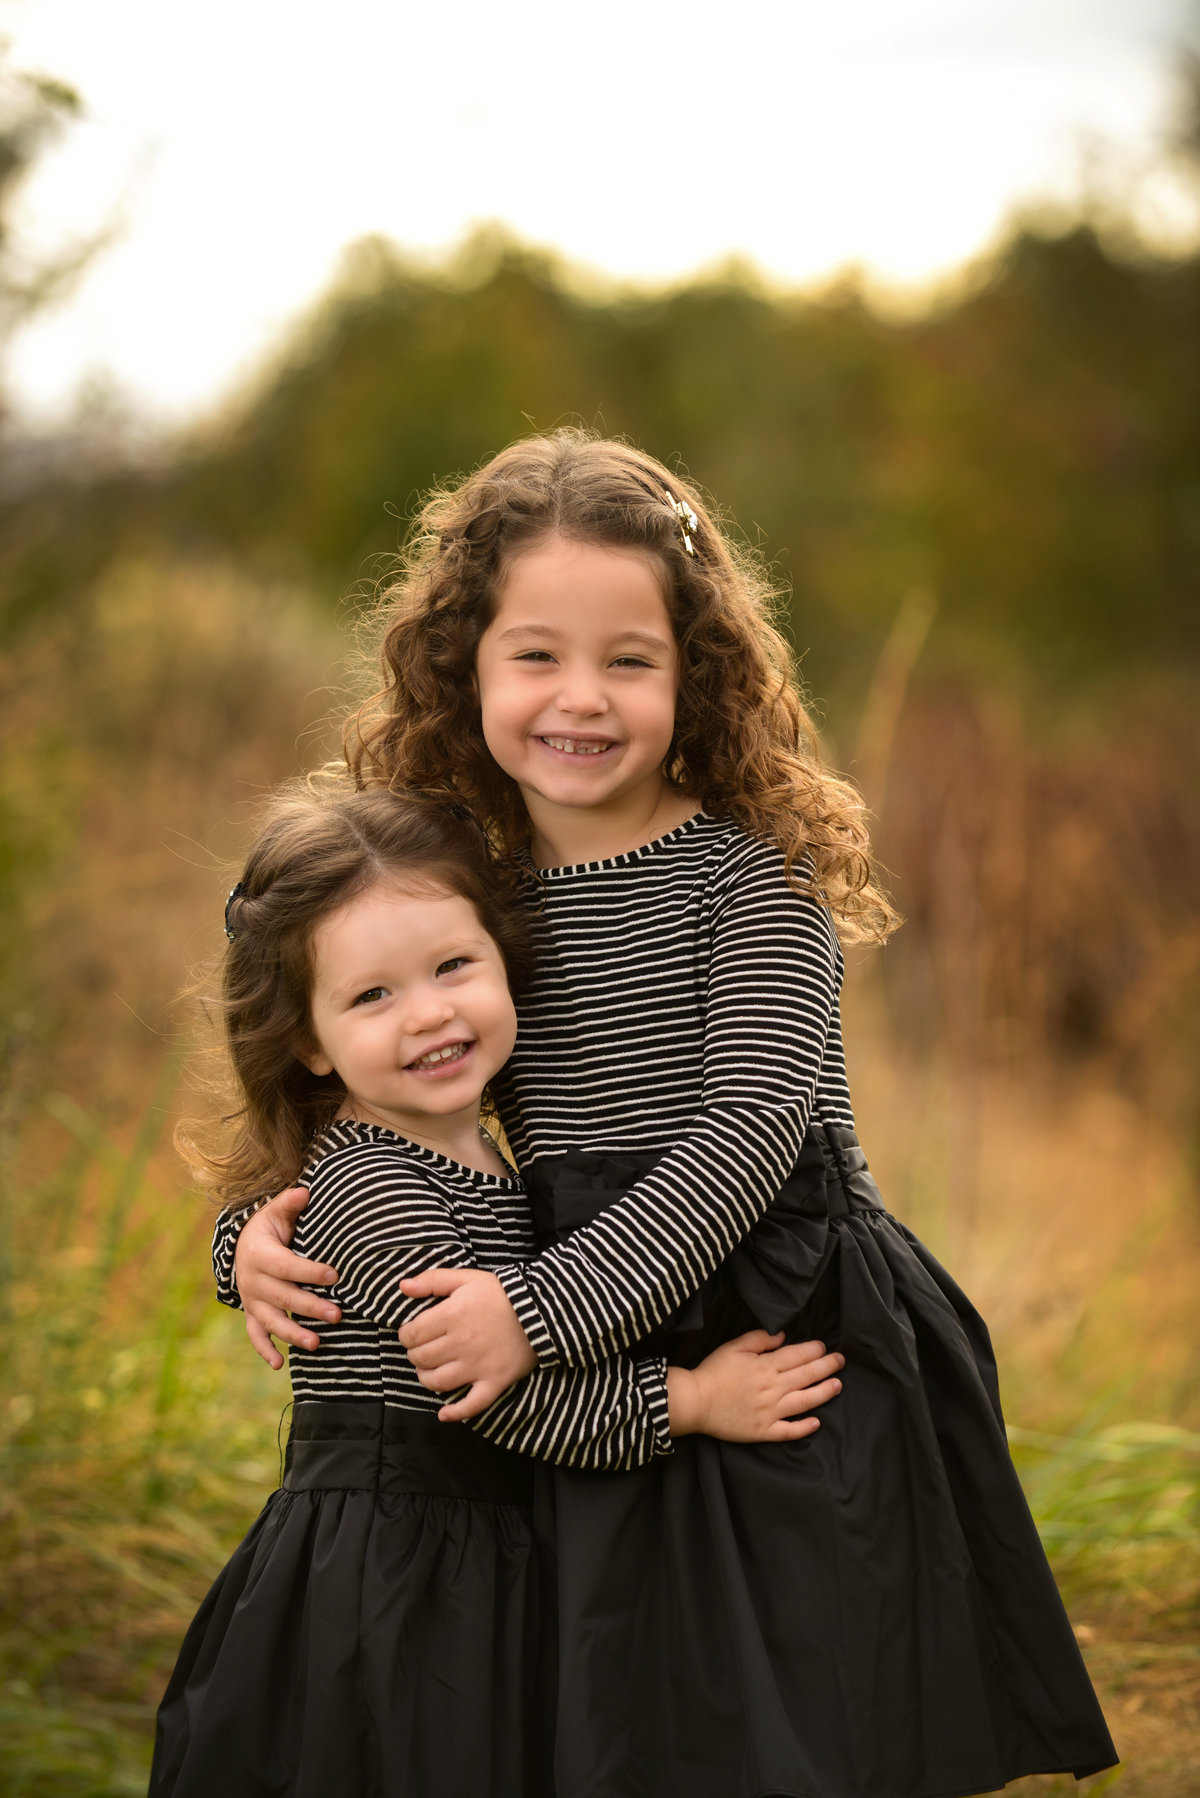 Sweet sisters during their family photo shoot in Baltimore, MD